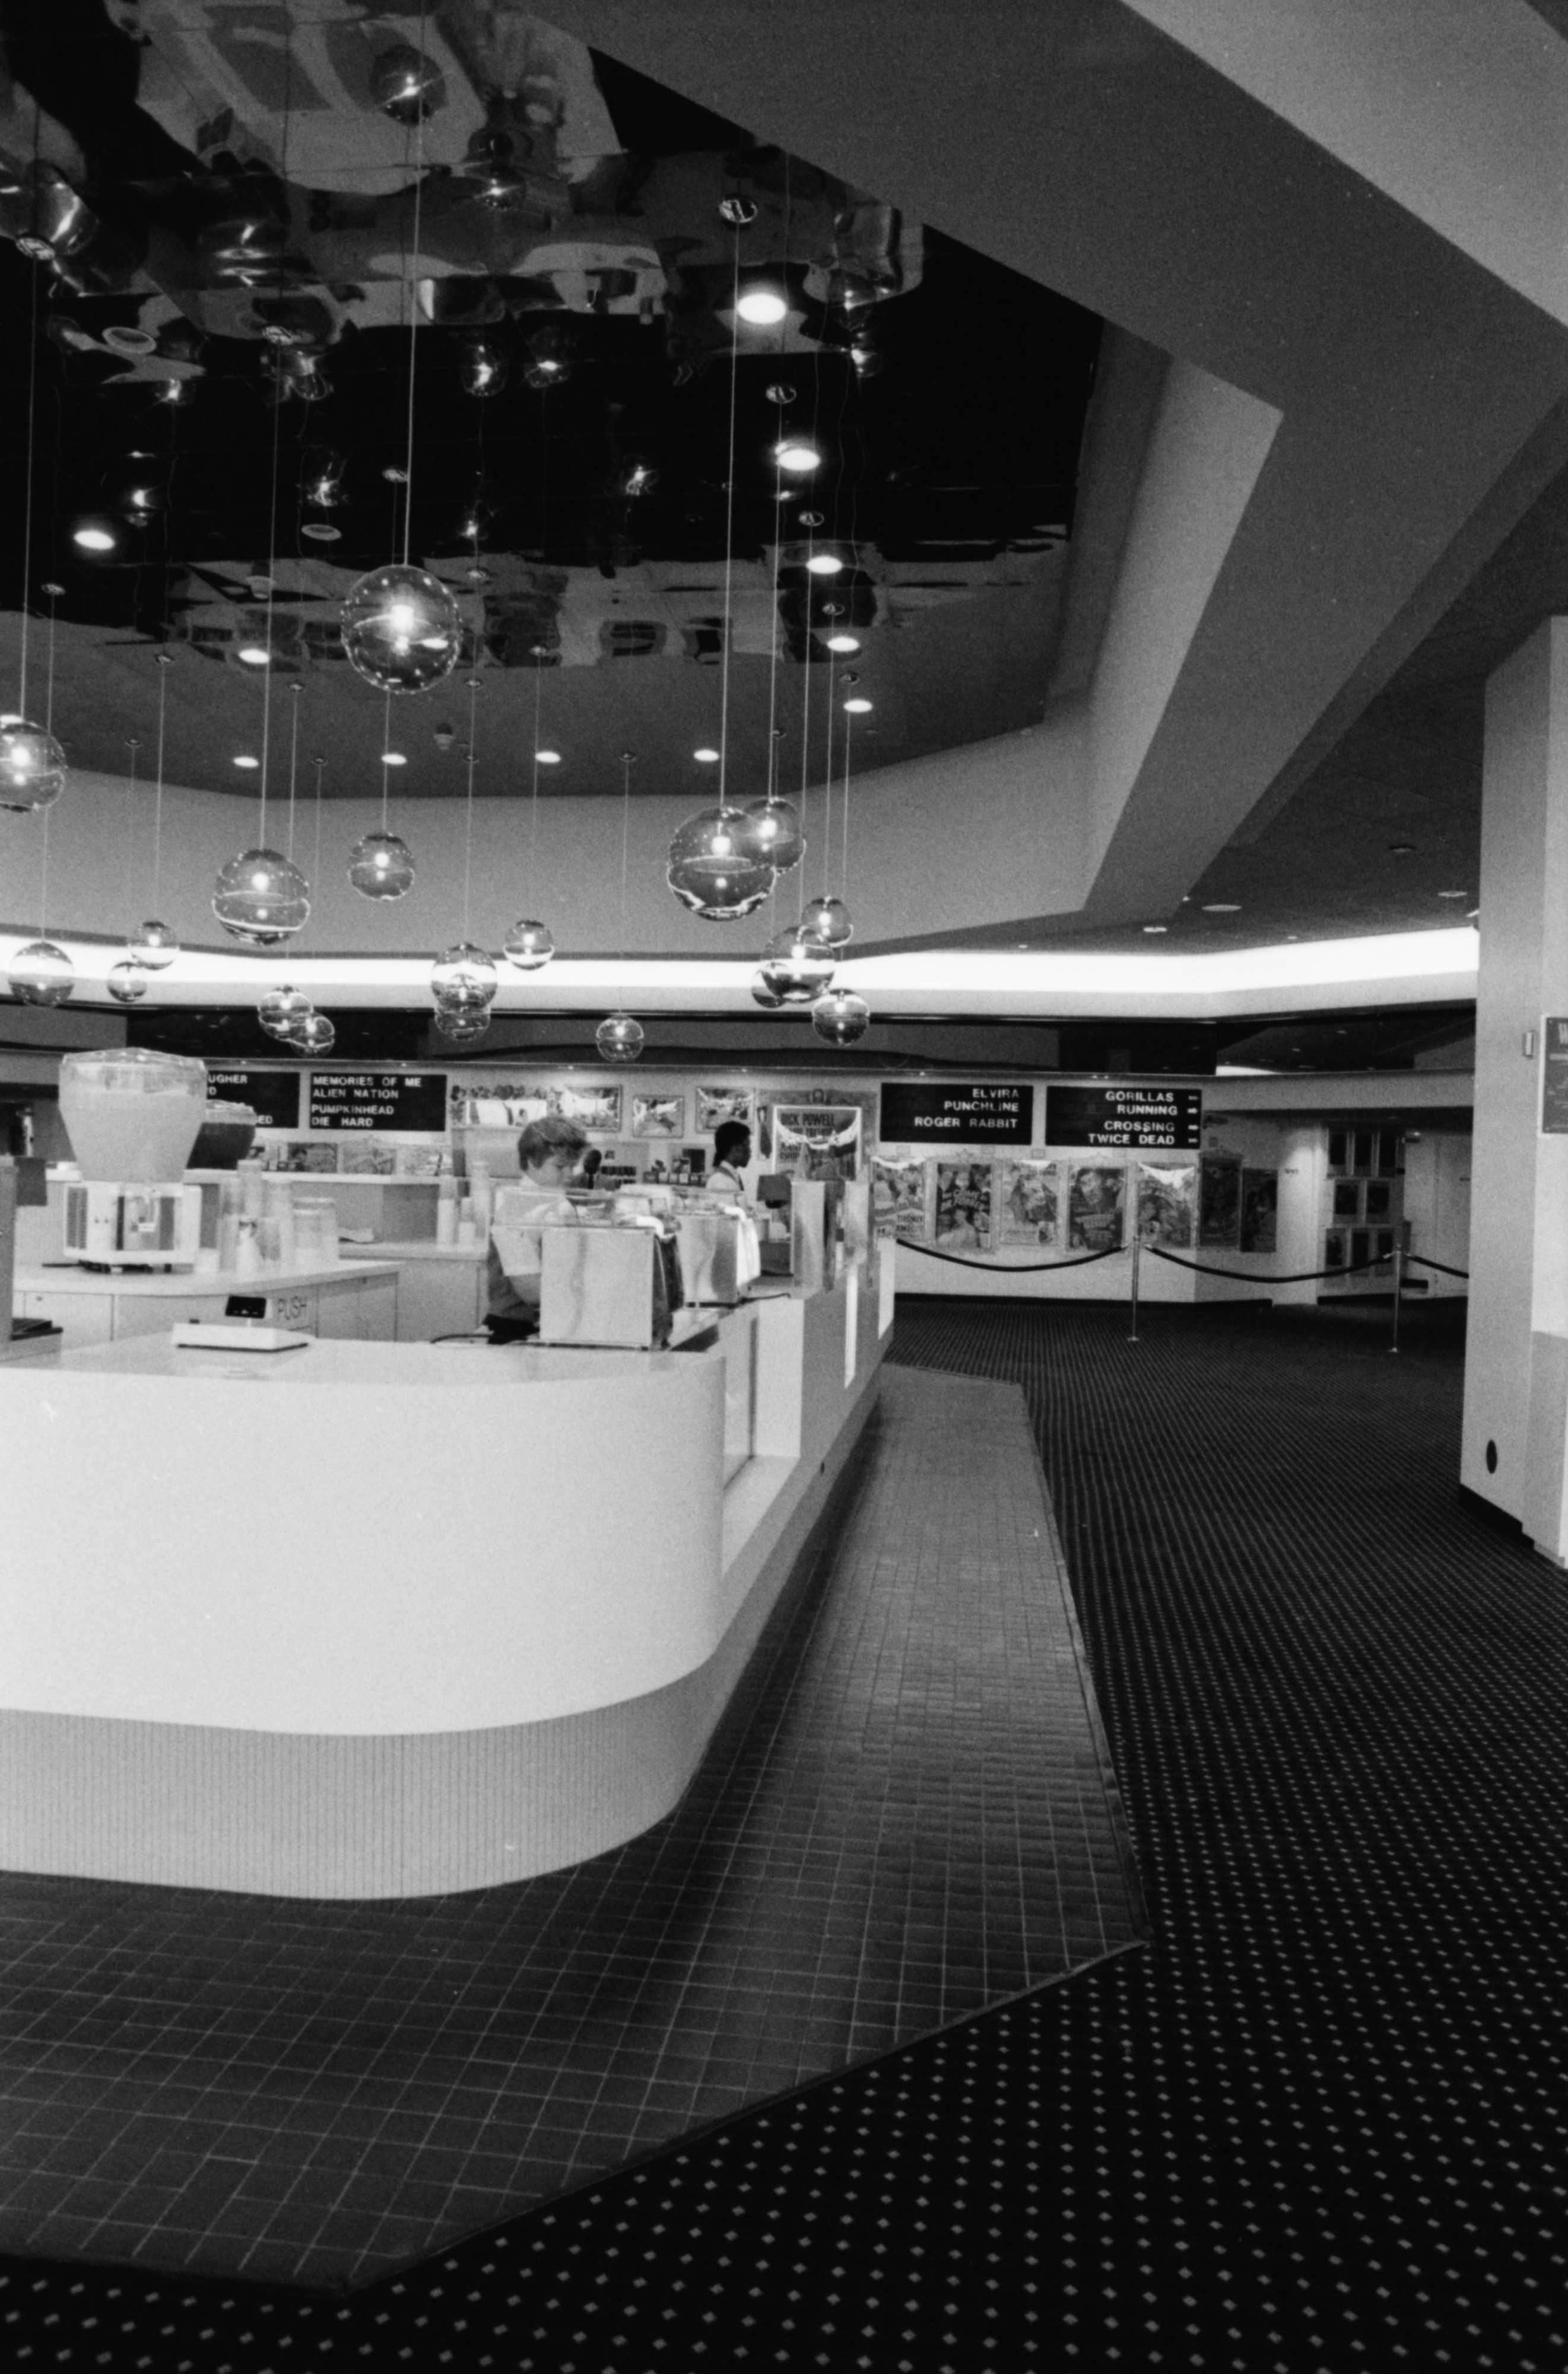 Showcase Cinemas Concession Stand, October 1988 image